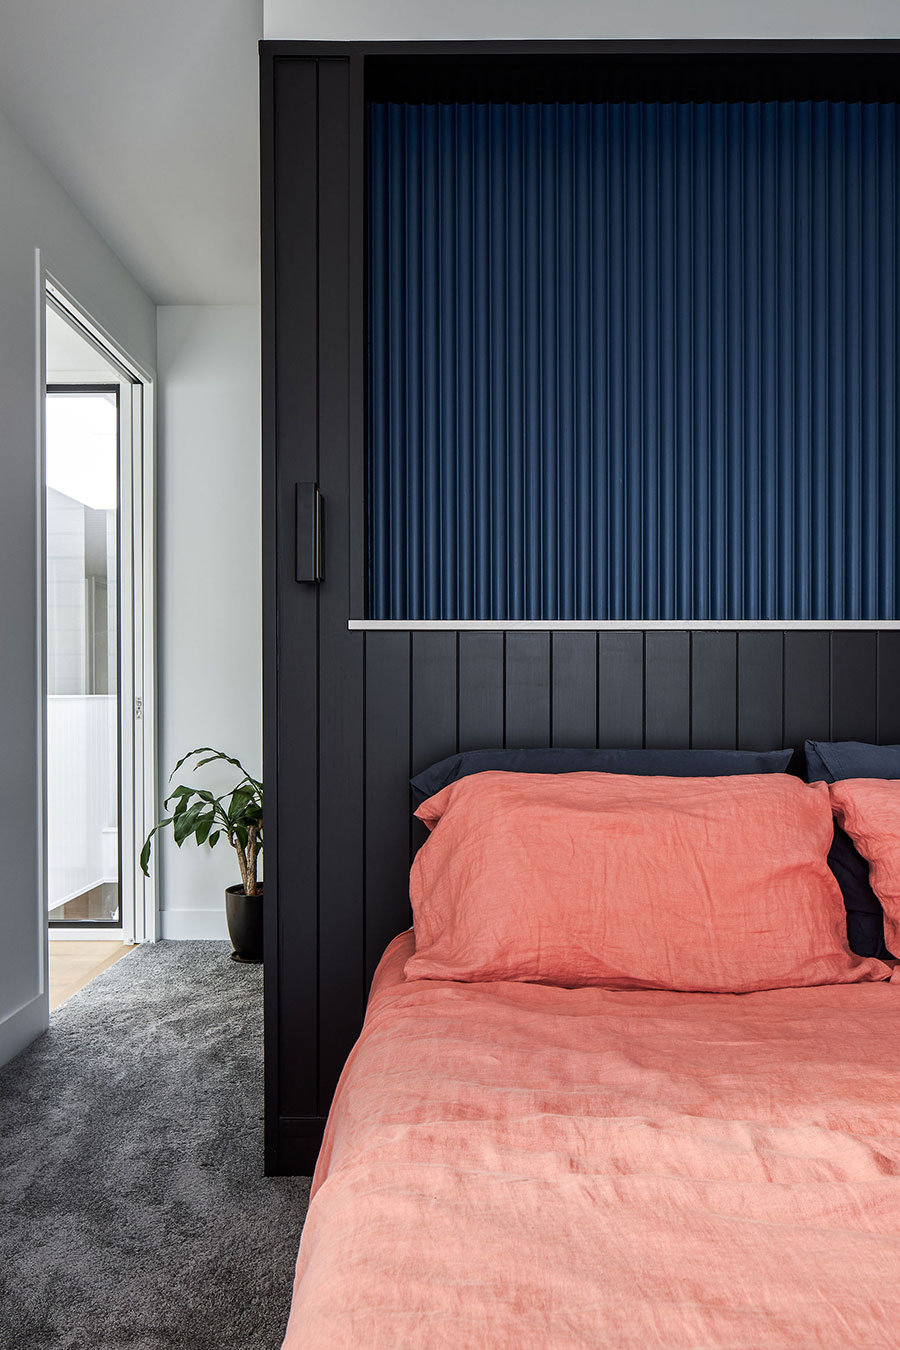 SMITH Architects modern family home coloured paneling bedhead